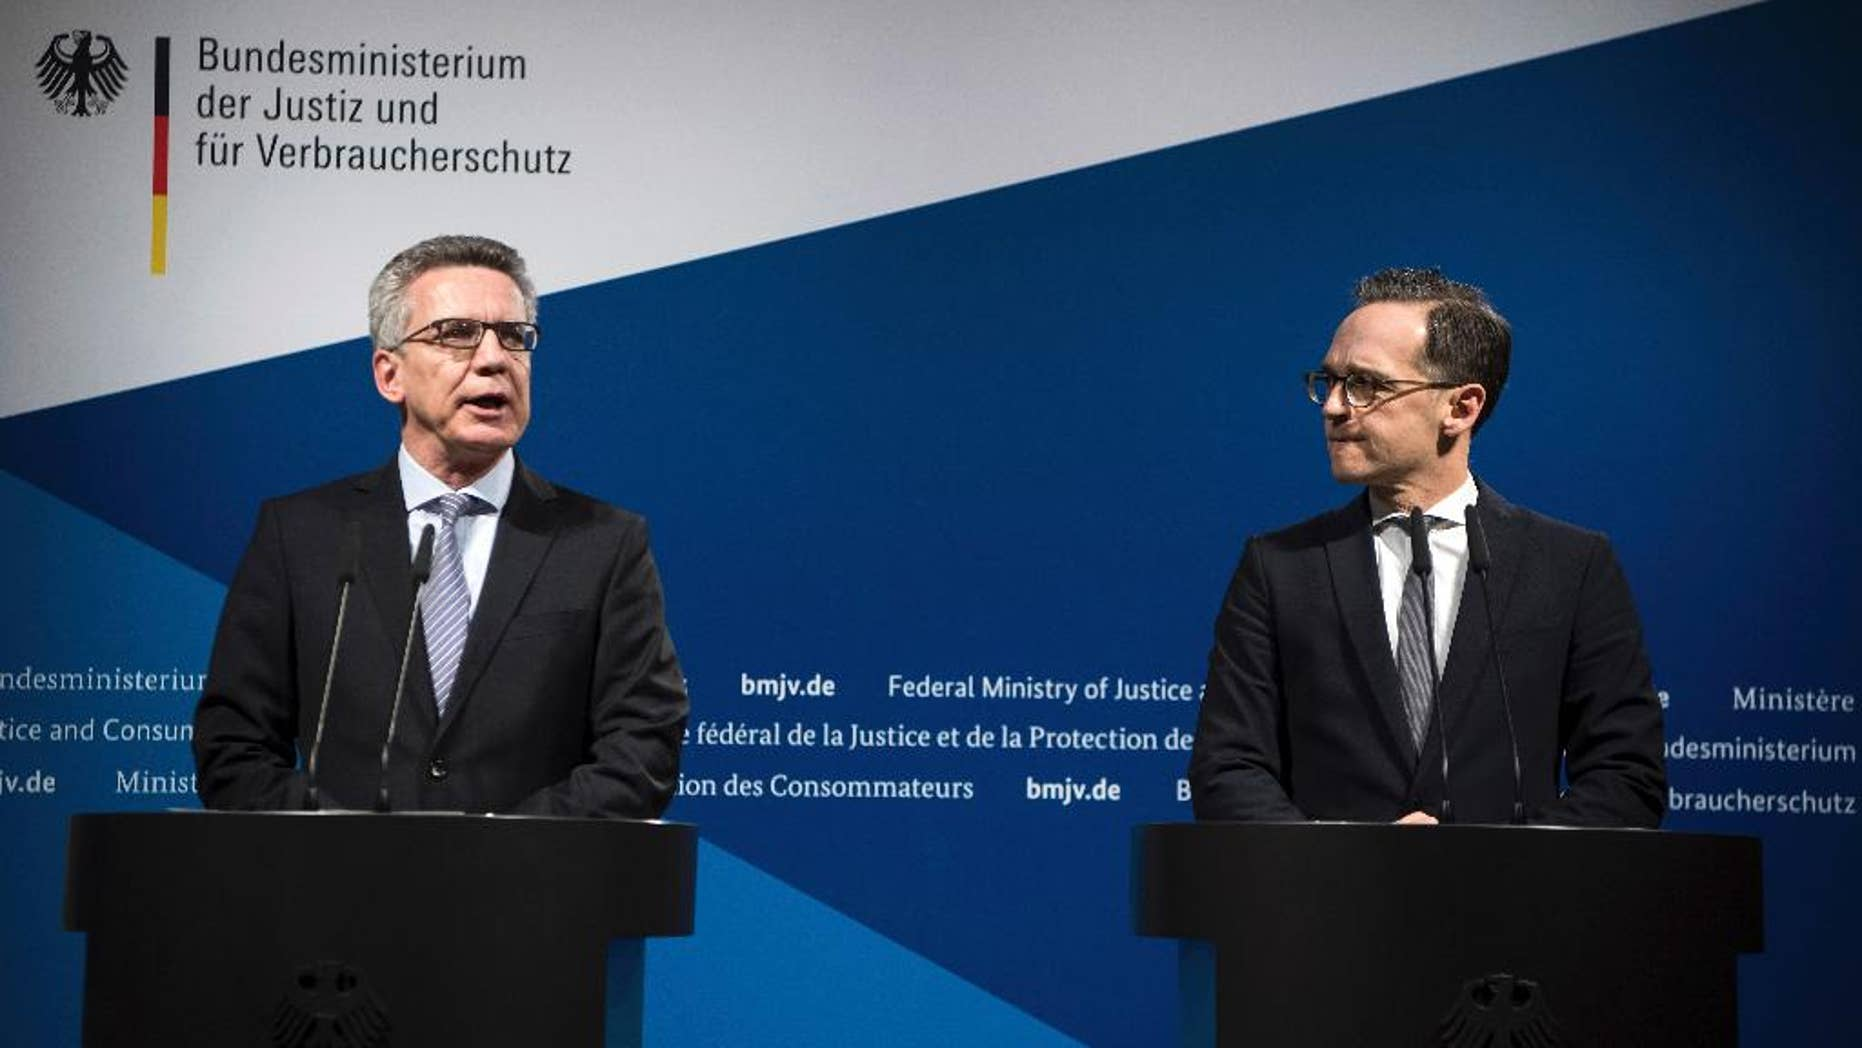 Germany's Interior Minister Thomas de Maizi're, left, and Justice Minister Heiko Maas attend a joint news conference in Berlin, Germany, Tuesday, Jan. 10, 2017. Germany's interior and justice ministers agreed Tuesday to toughen the rules on deporting failed asylum-seekers and monitoring extremists in response to last month's deadly truck attack on a Christmas market. (Bernd von Jutrczenka/dpa via AP)